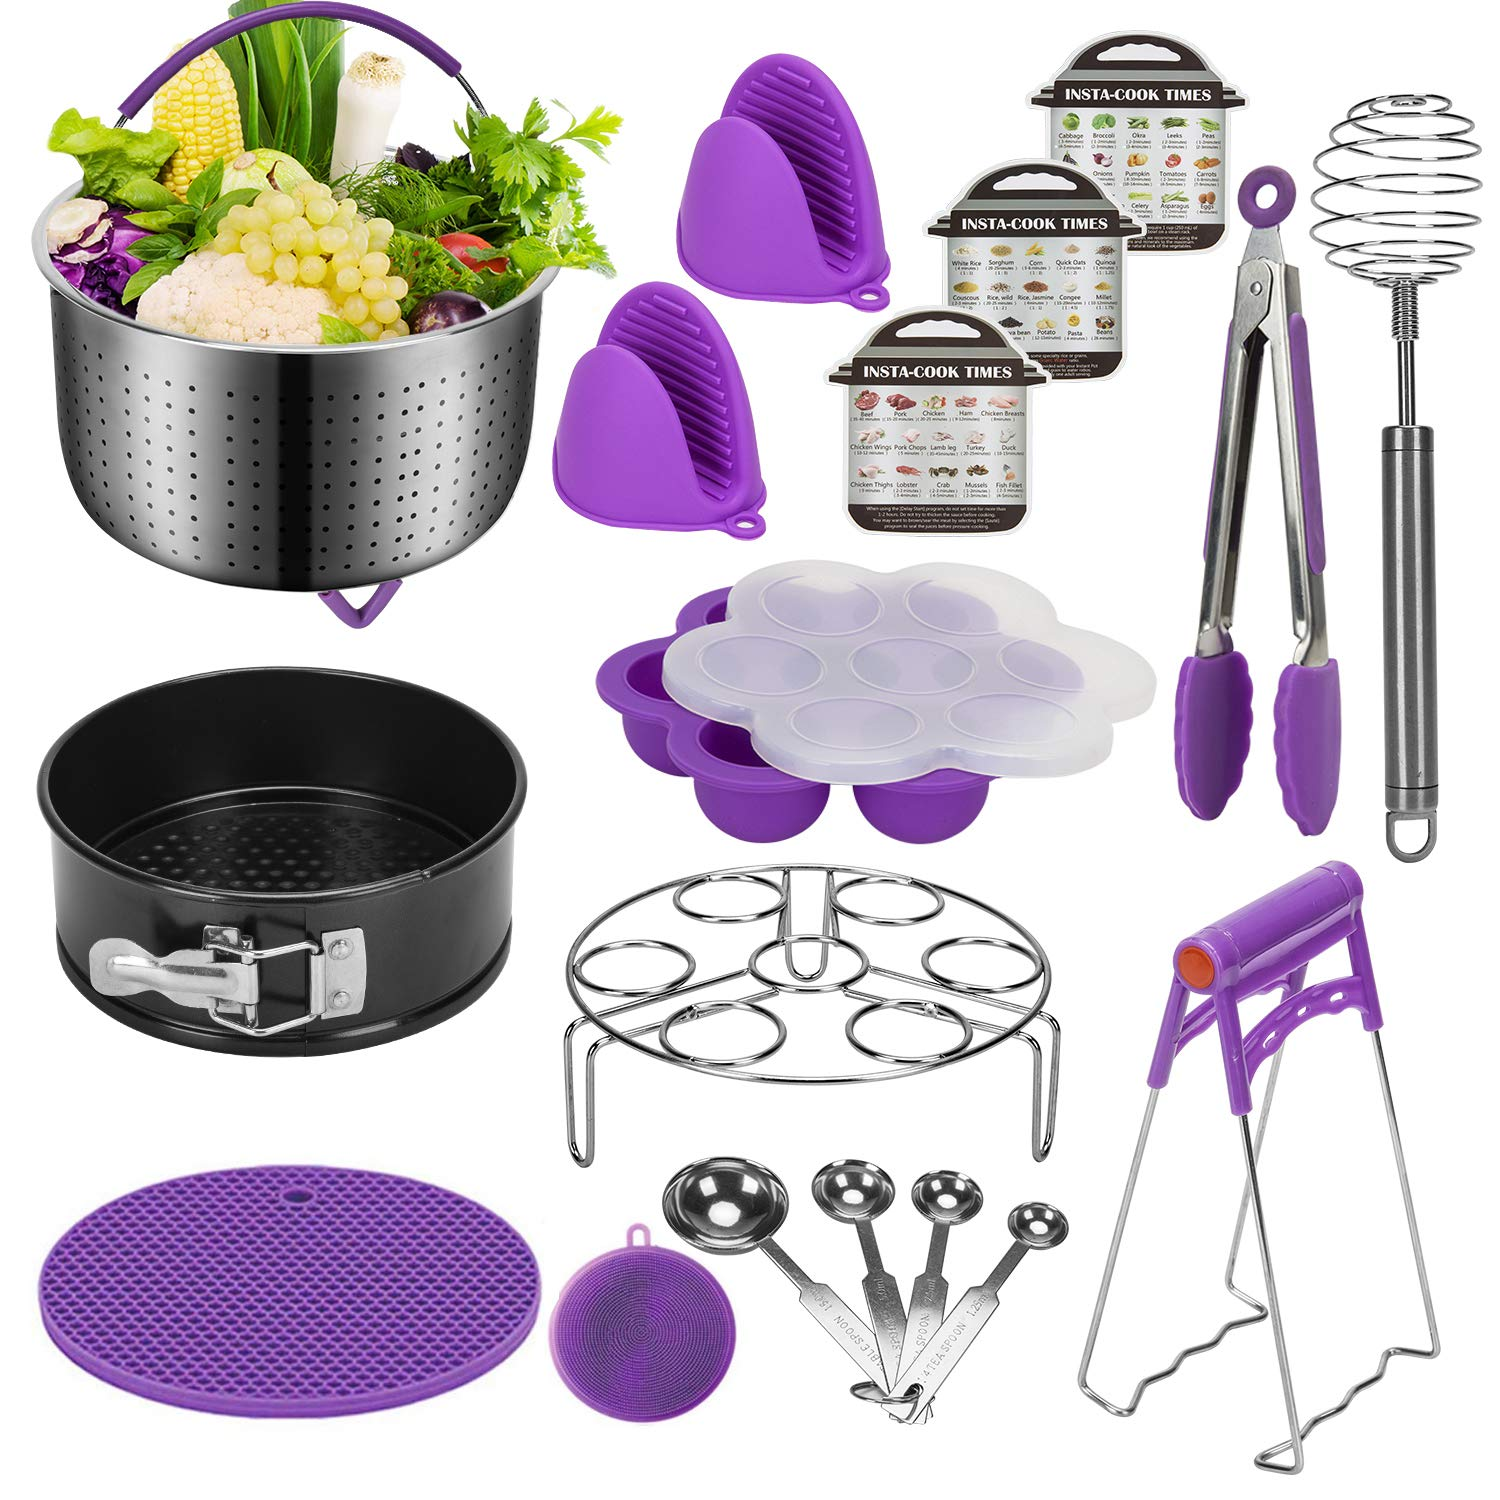 Black Blue Silicon Egg Bites Mold Egg Steamer Rack Instant Pot Accessories Set Compatible with 6,8 Qt Springform Pan Stainless Steel Steamer Basket Magnetic Cheat Sheets and More